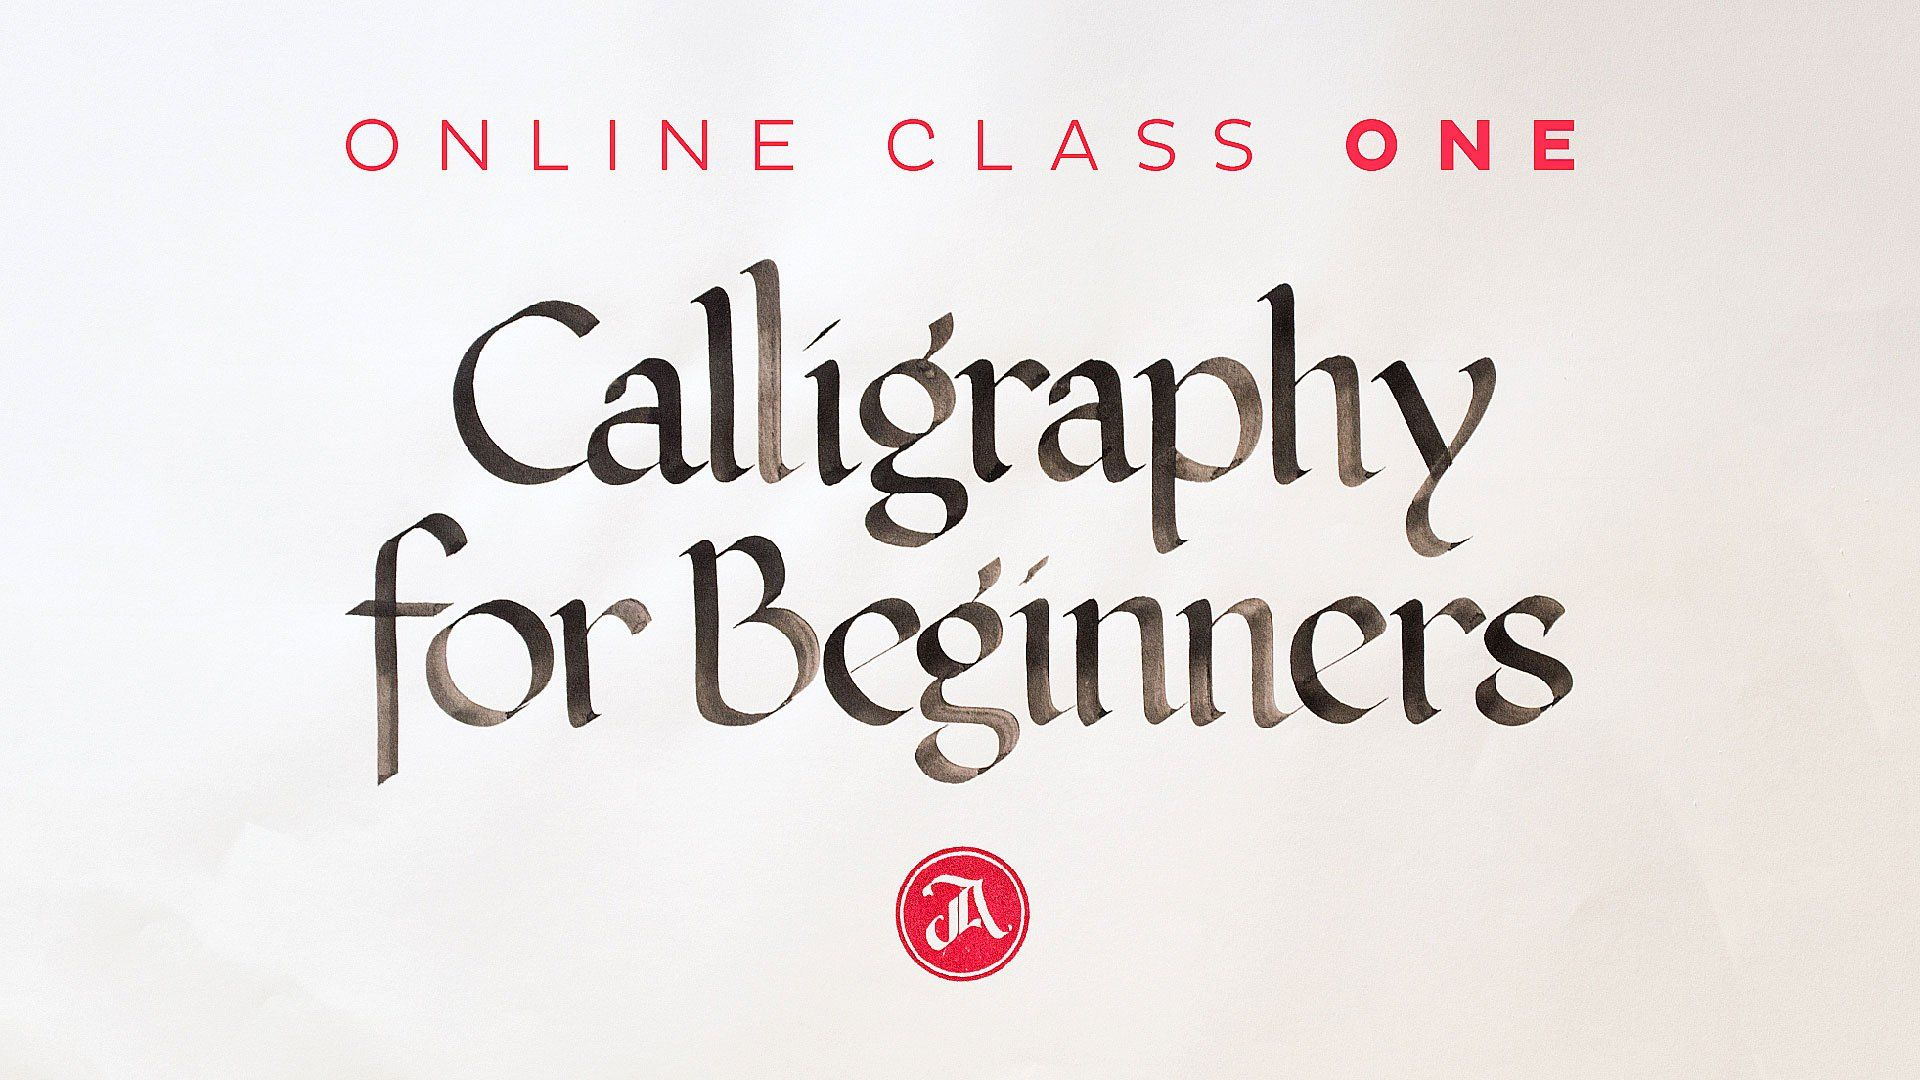 Calligraphy For Beginners Is A Class For Anyone Who Wants